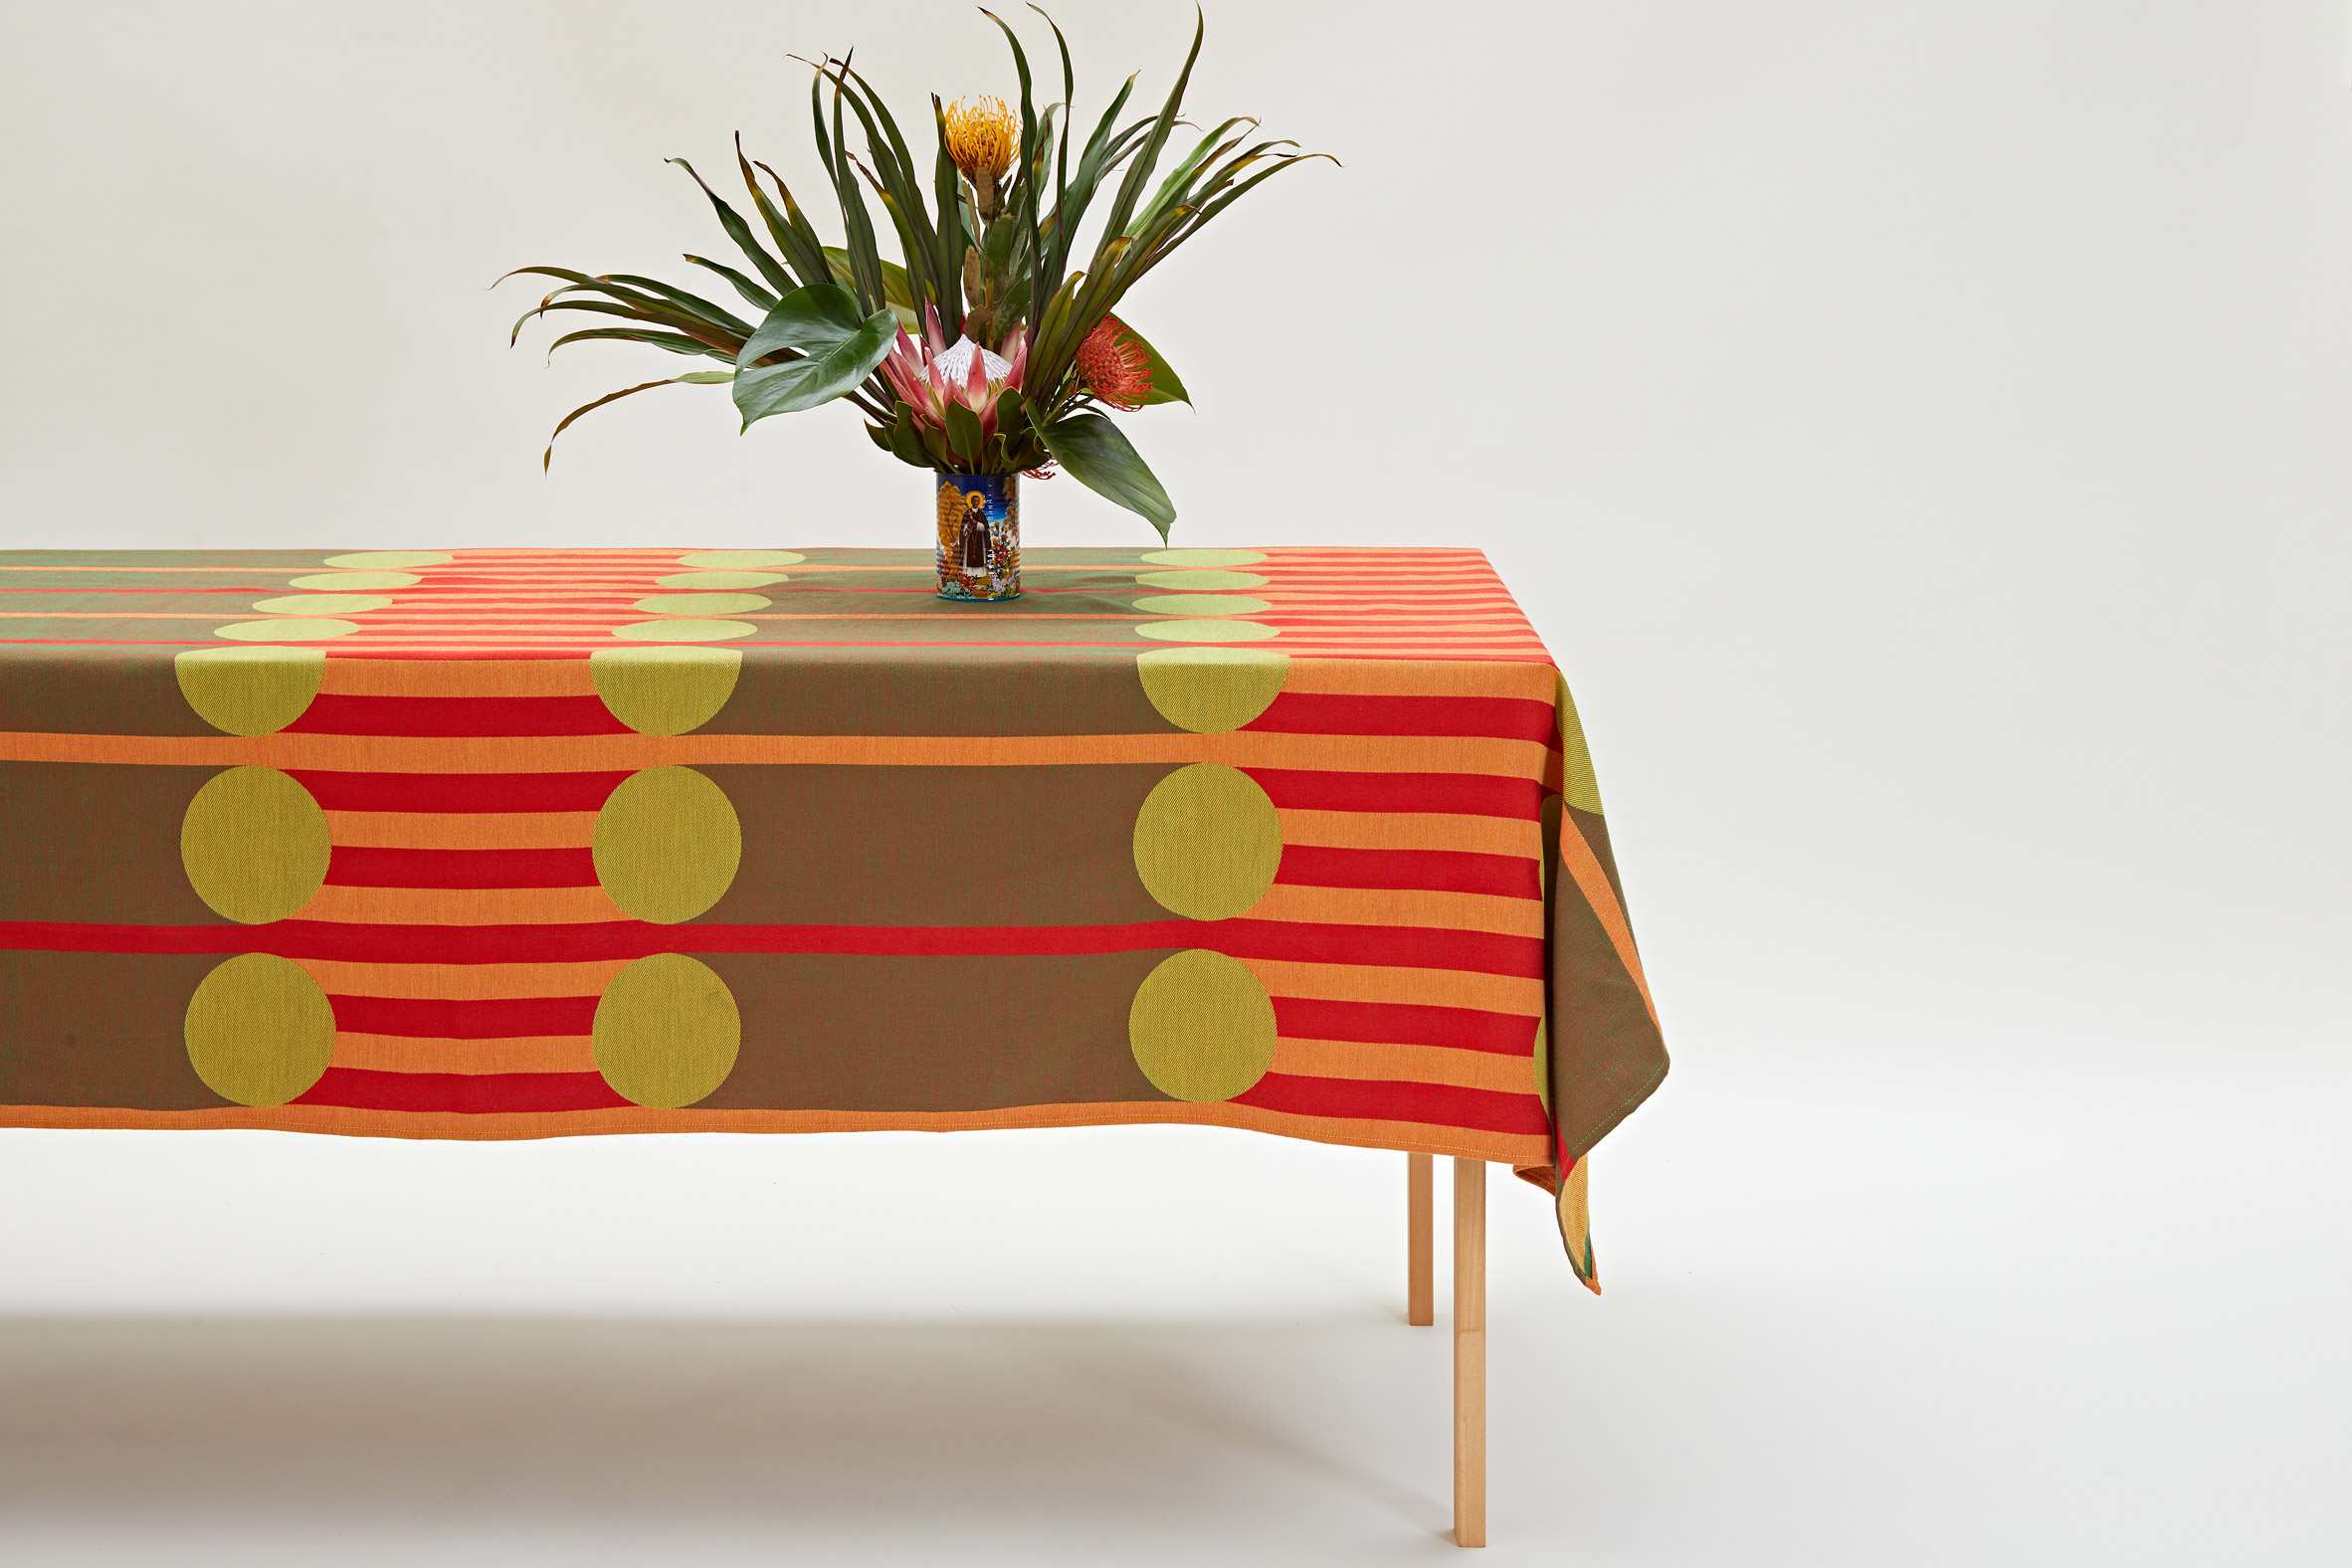 Aami Aami tablecloth from Yinka Ilori homeware collection